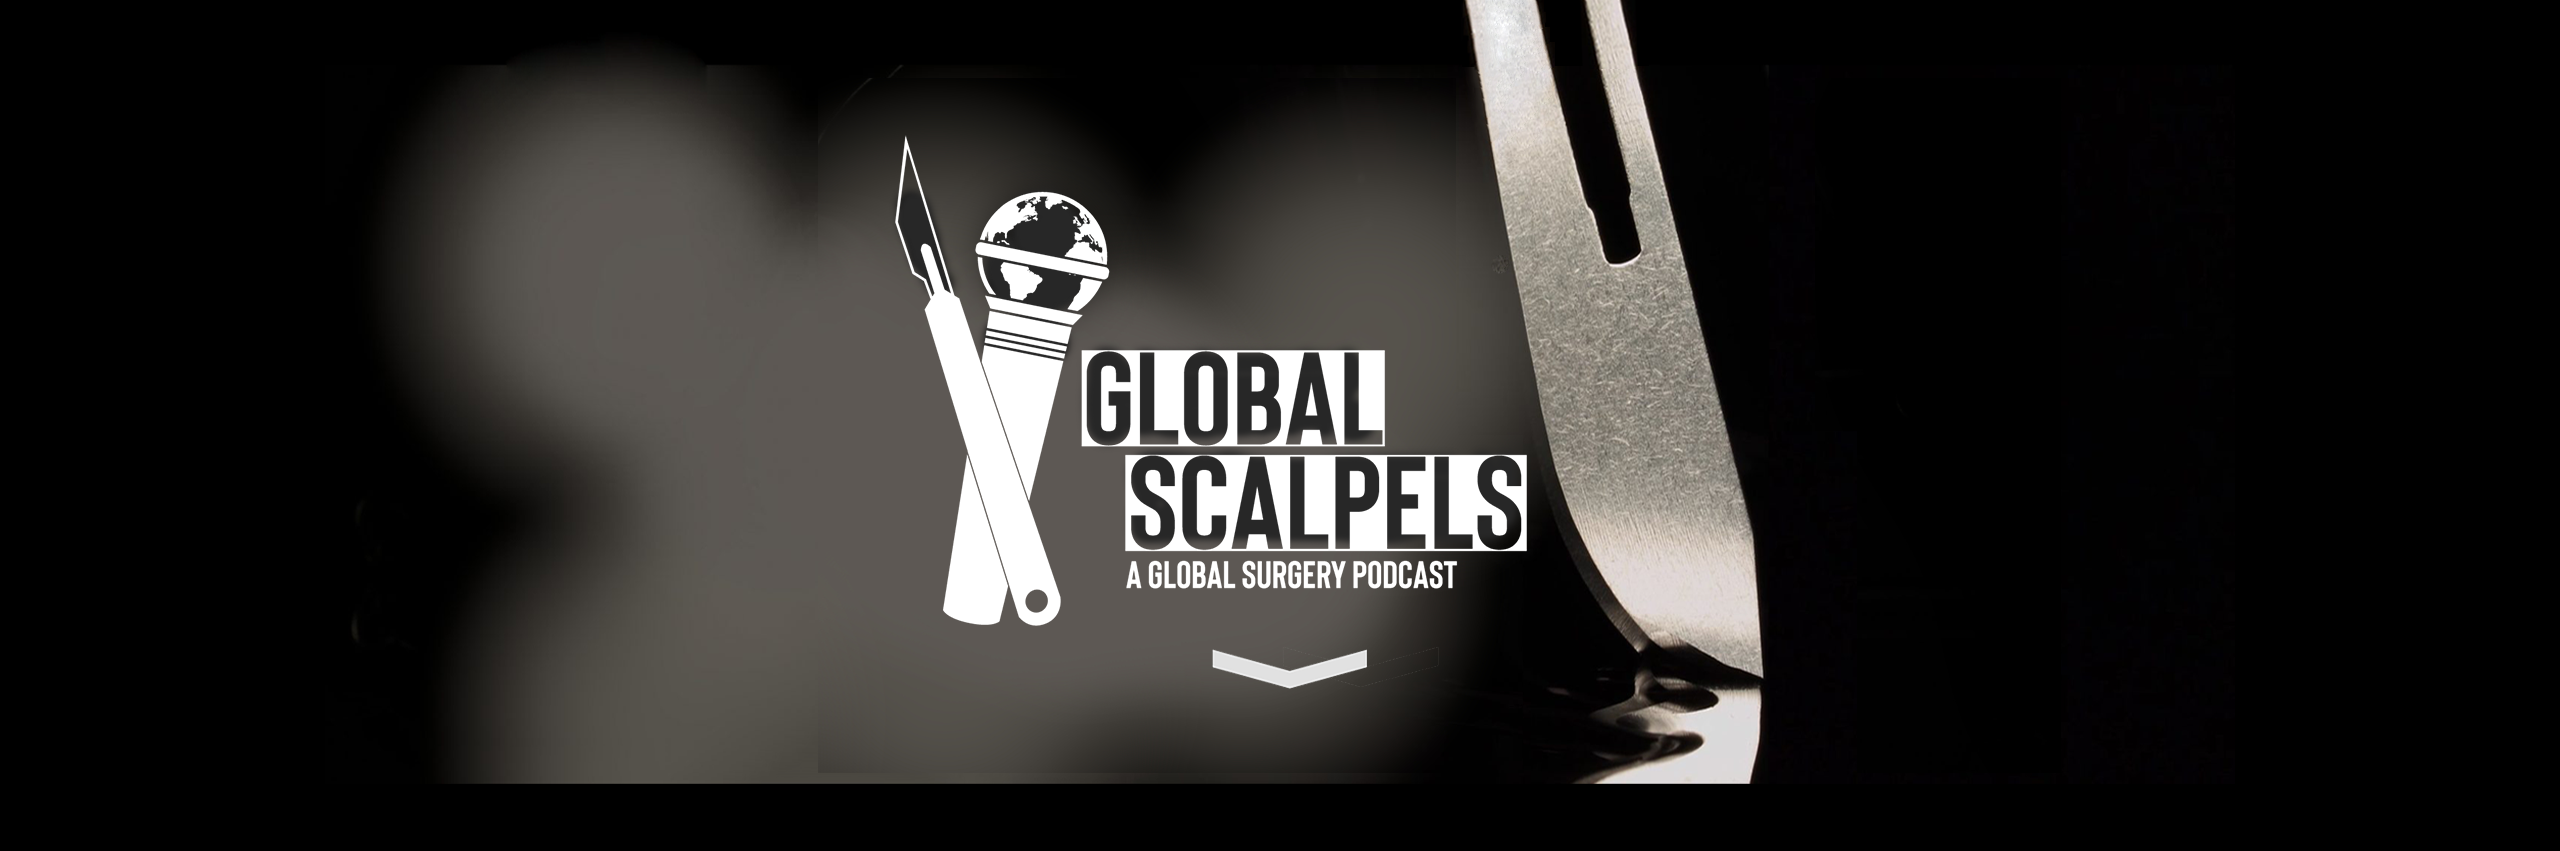 Global Scaple Main Page